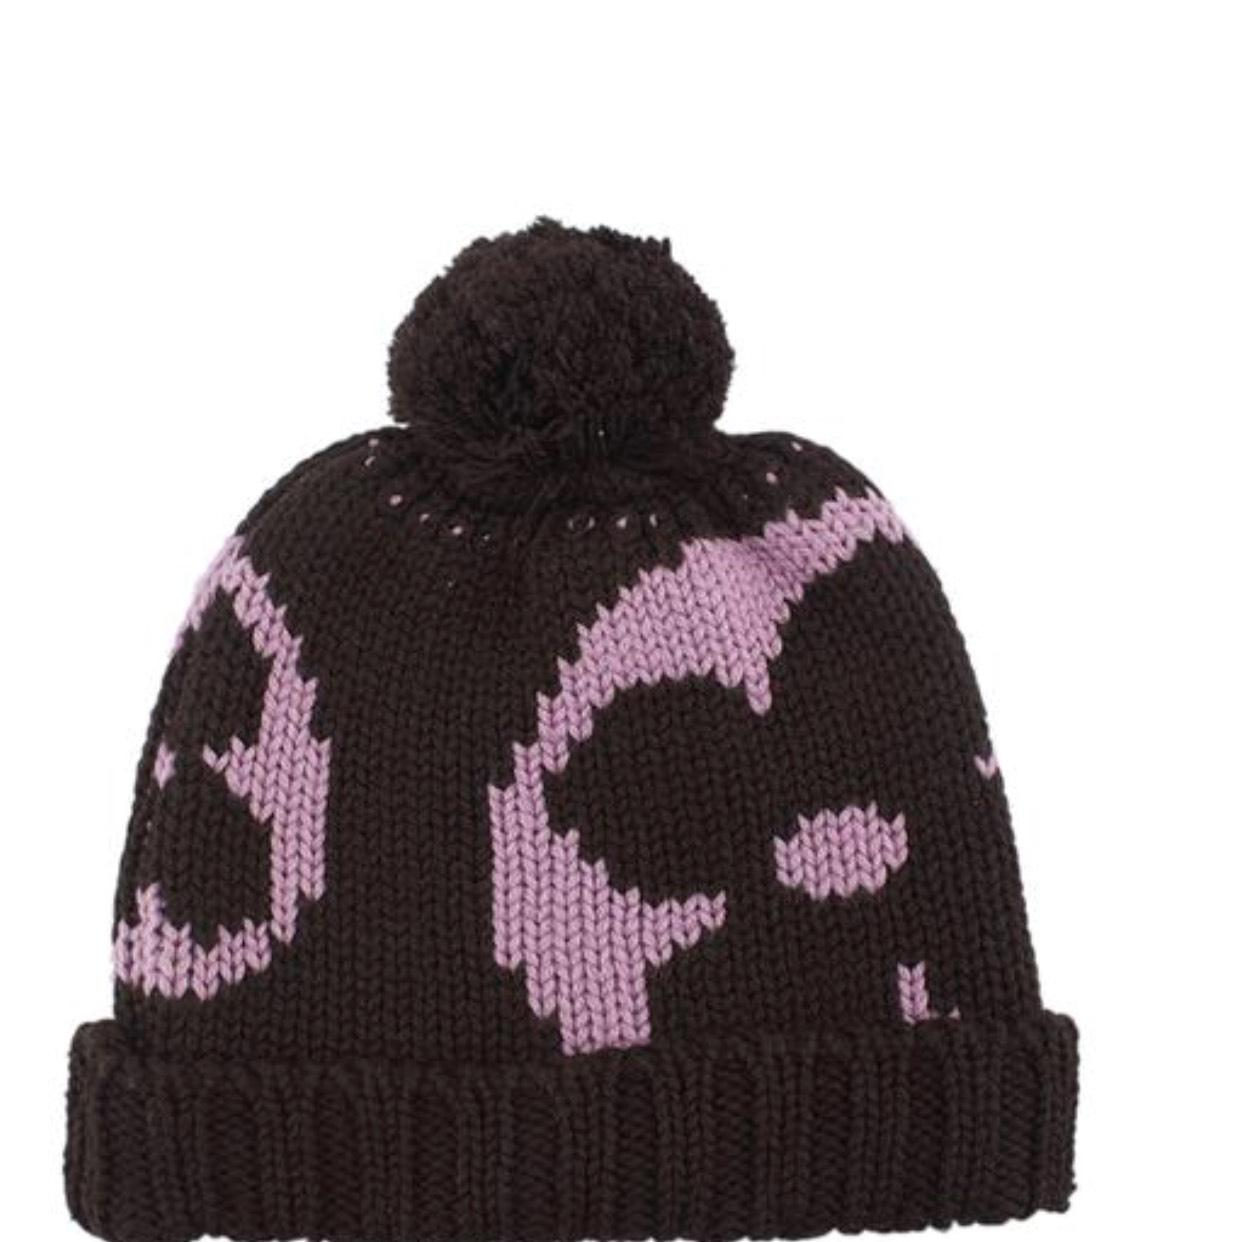 louis vuitton burgundy and pink wool winter hat hats tradesy